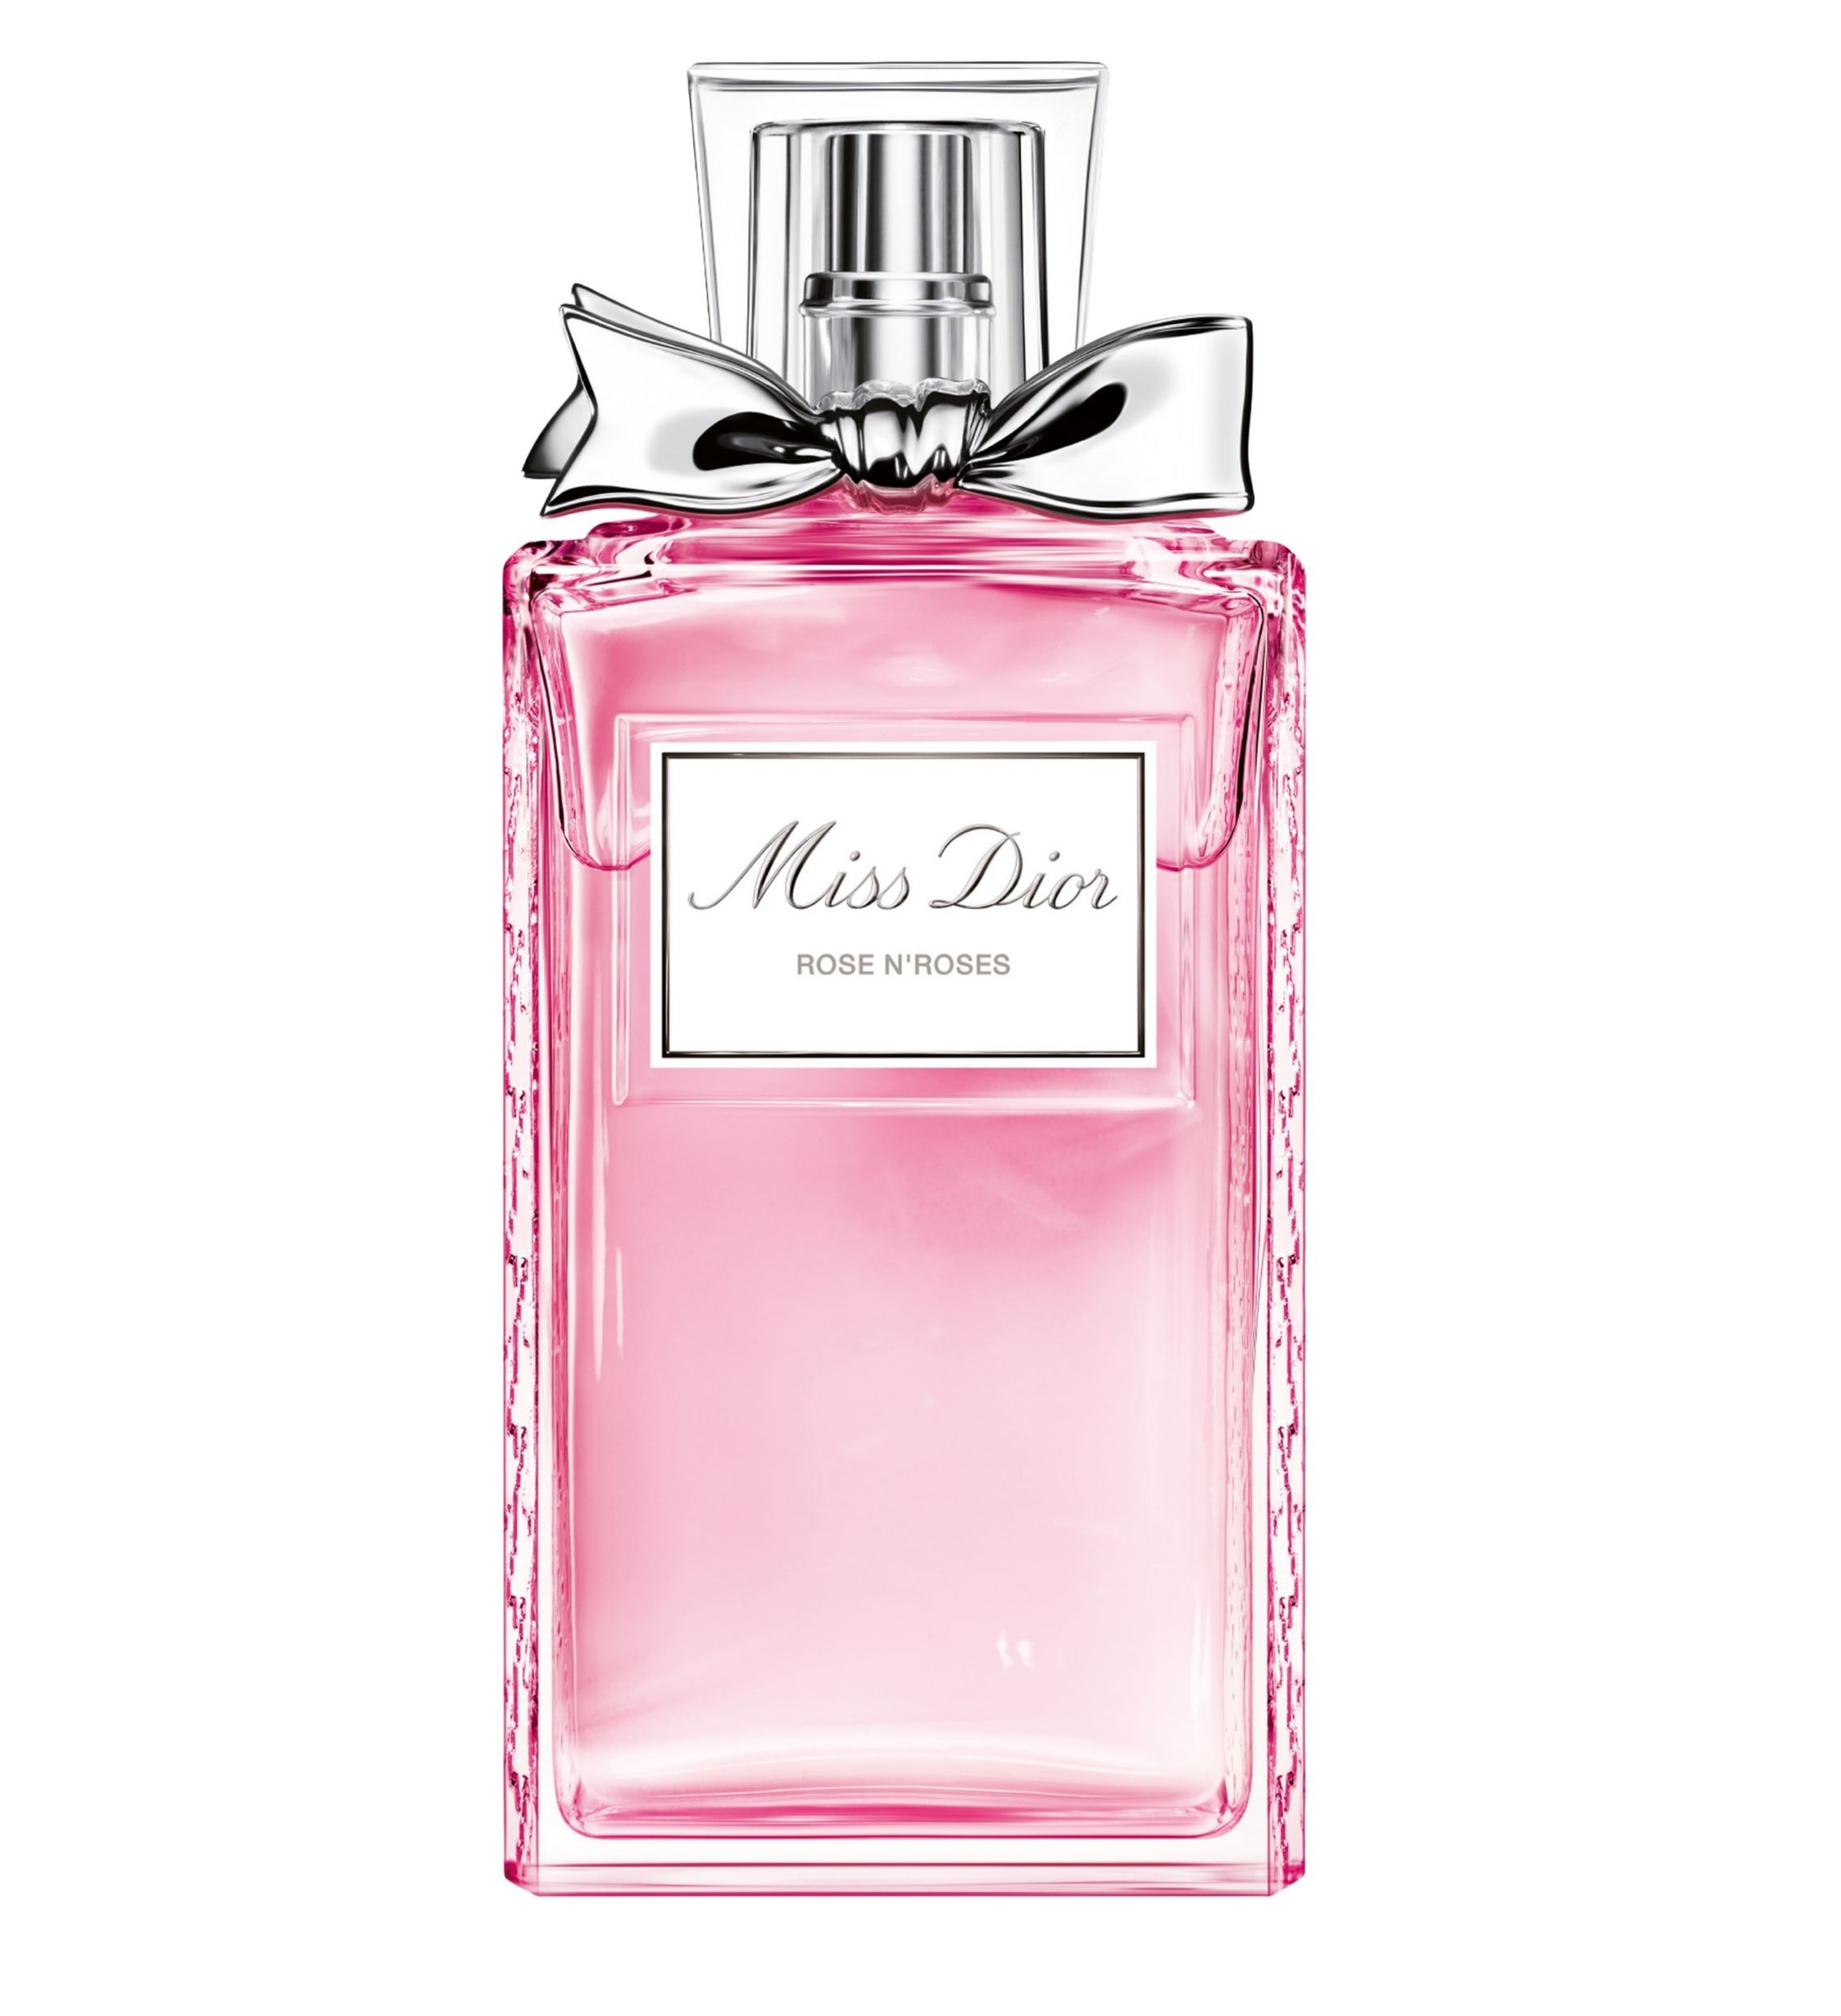 CHRISTIAN DIOR MISS DIOR ROSE N